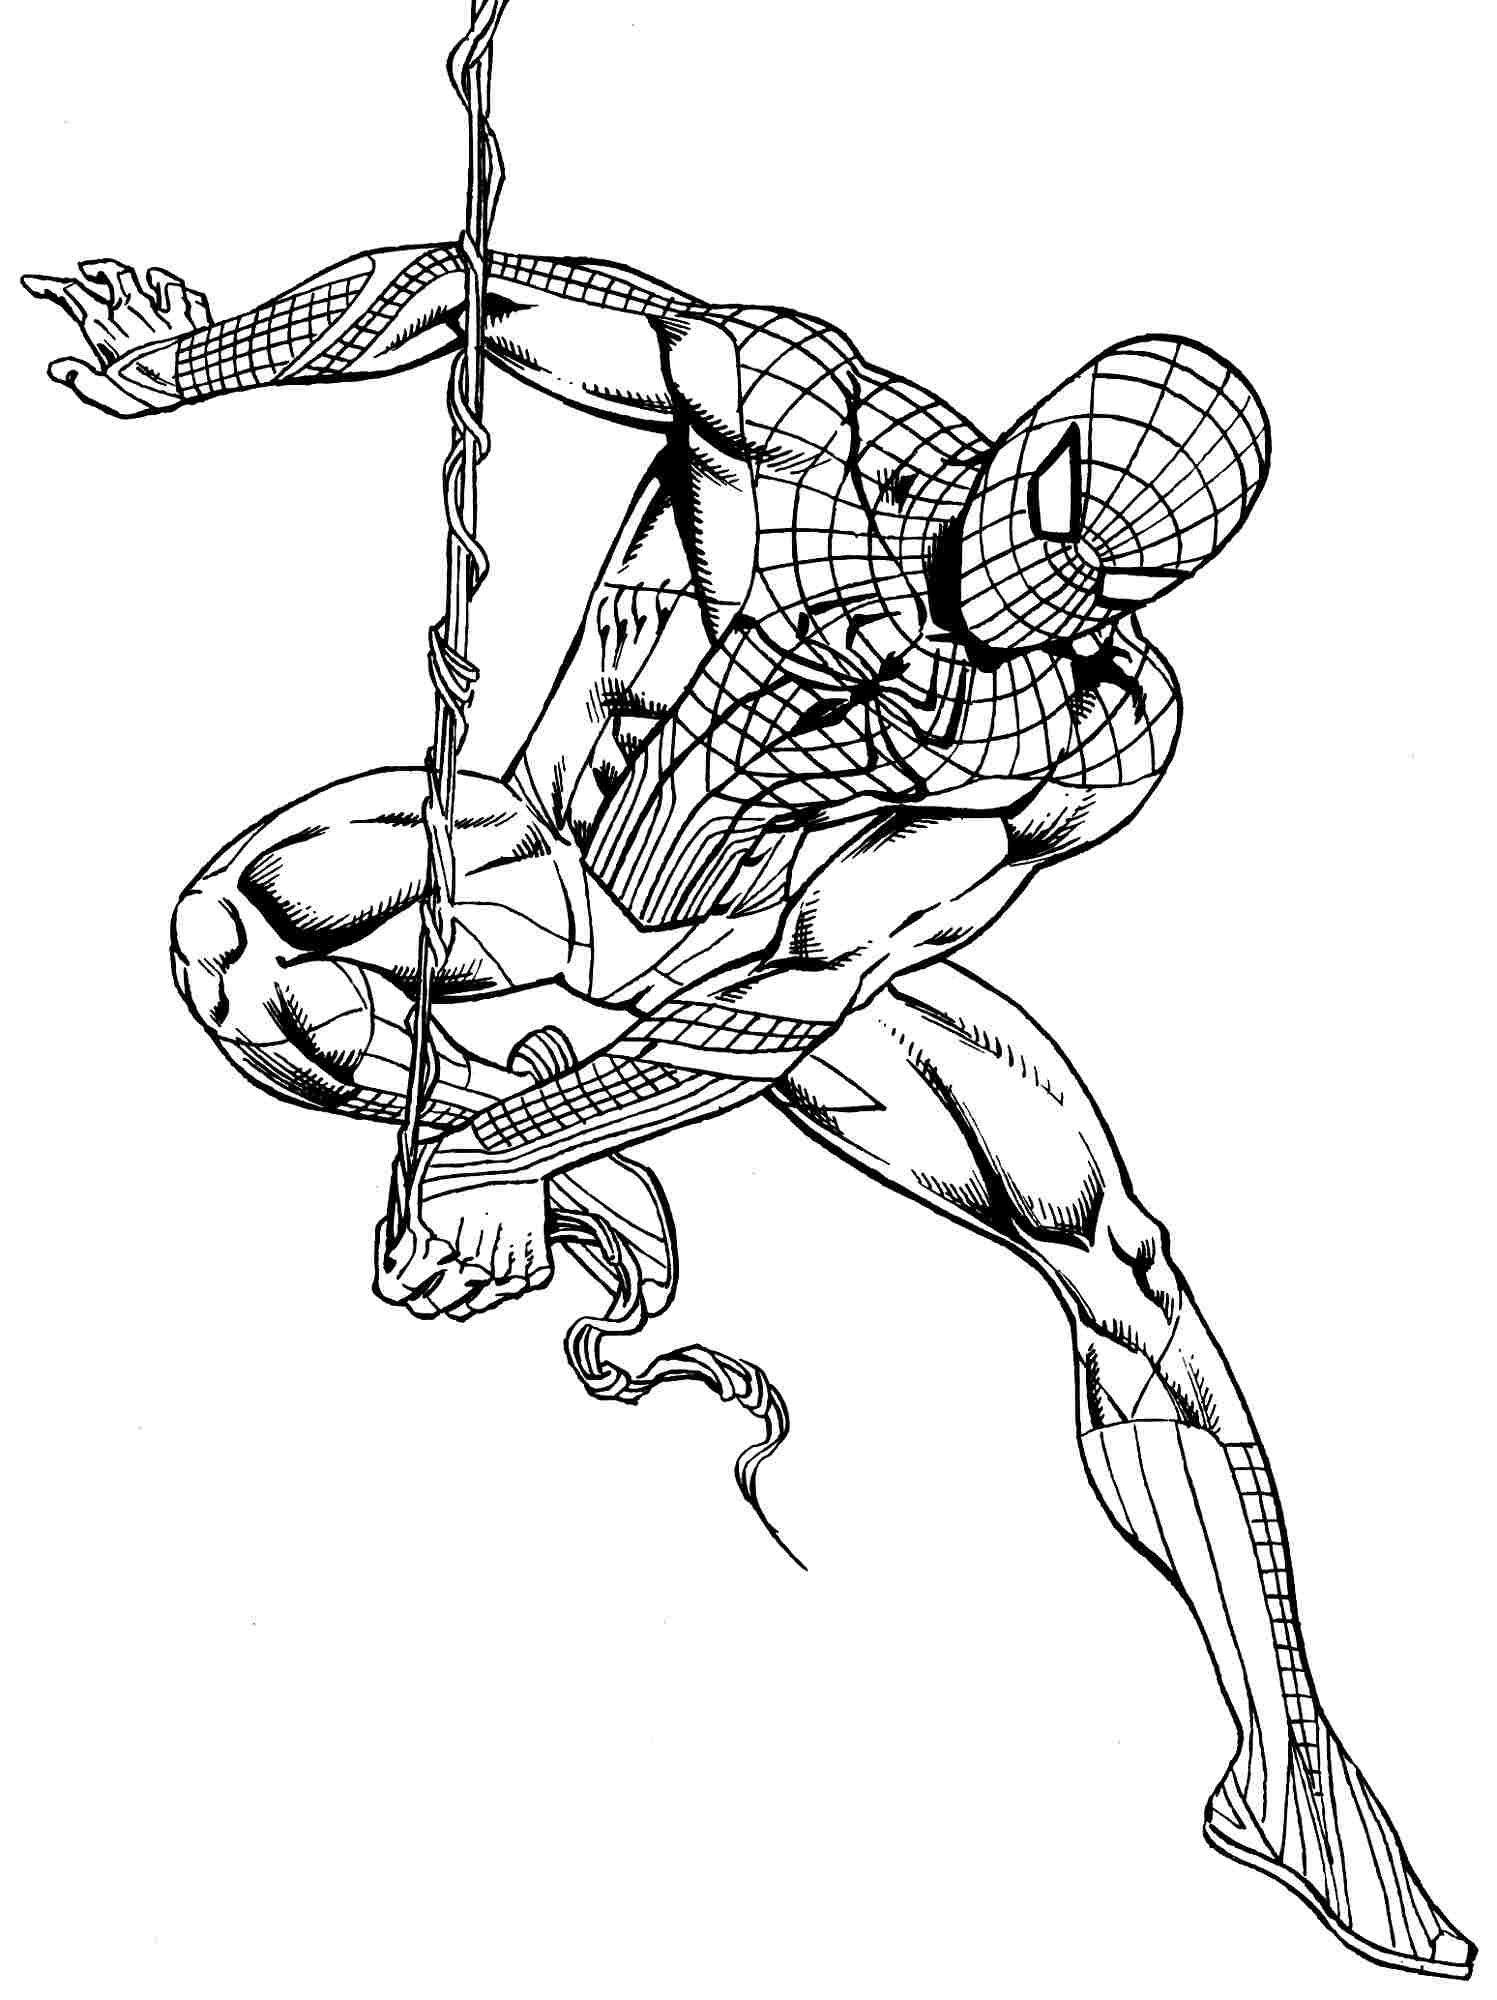 Download Or Print The Free Spiderman On Rope Coloring Page